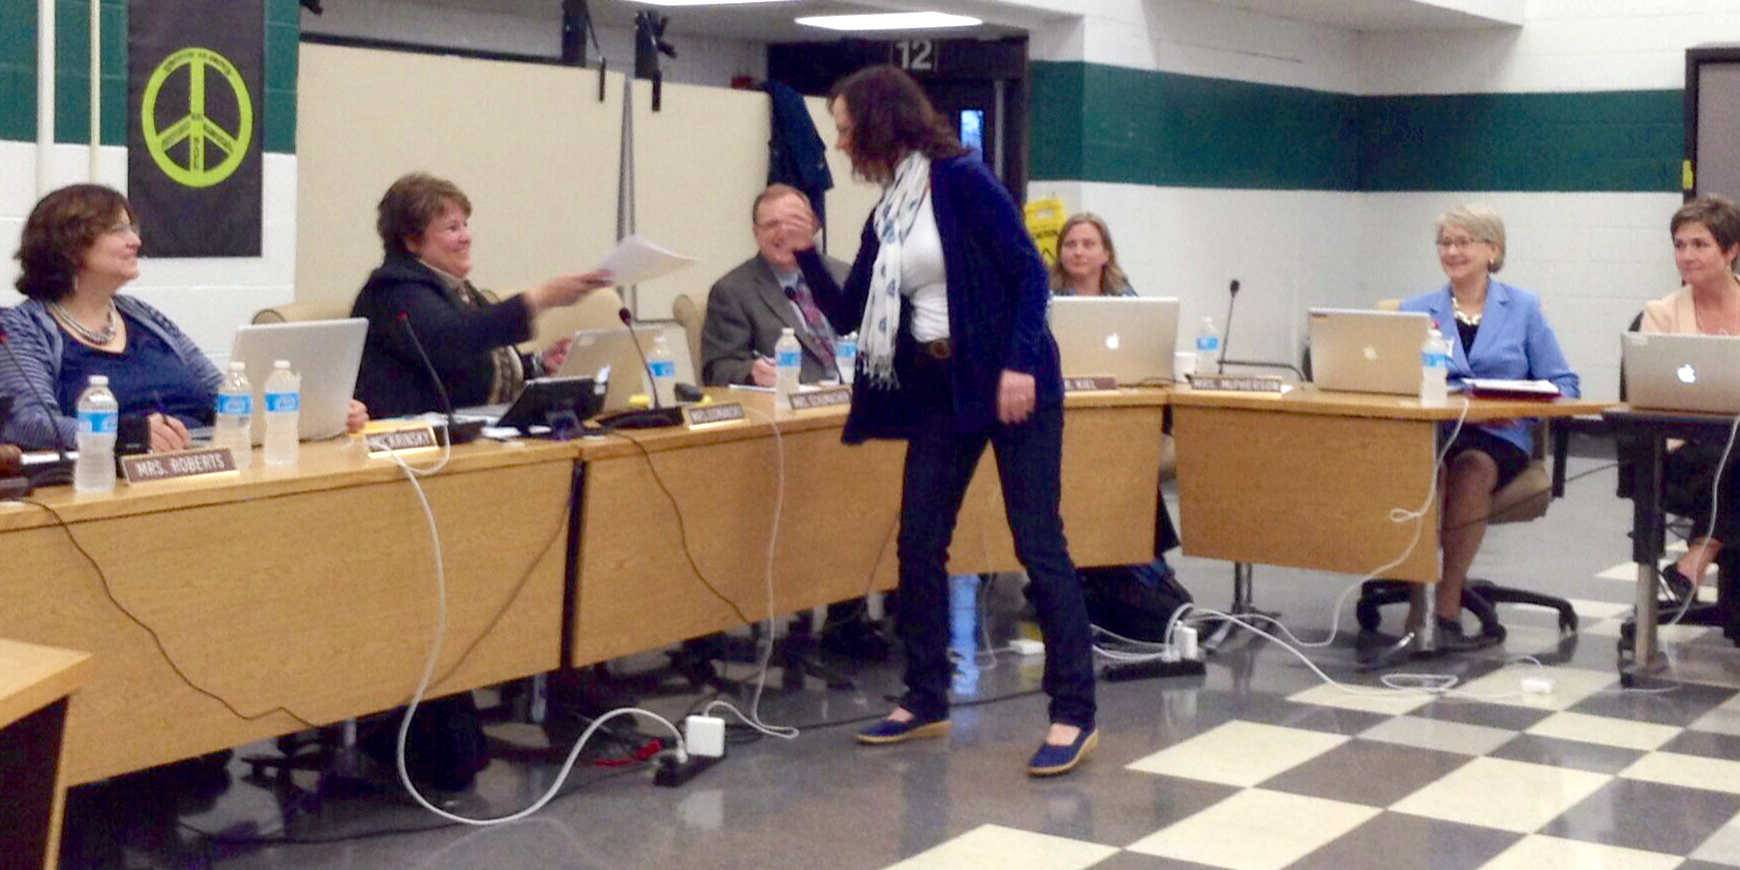 Elizabeth Galliano, a parent whose children attend the Ridge Family Center for Learning, presents a petition to the District 59 school board Monday night that was signed by some 90 parents who are opposed to plans to shorten the Ridge class day.